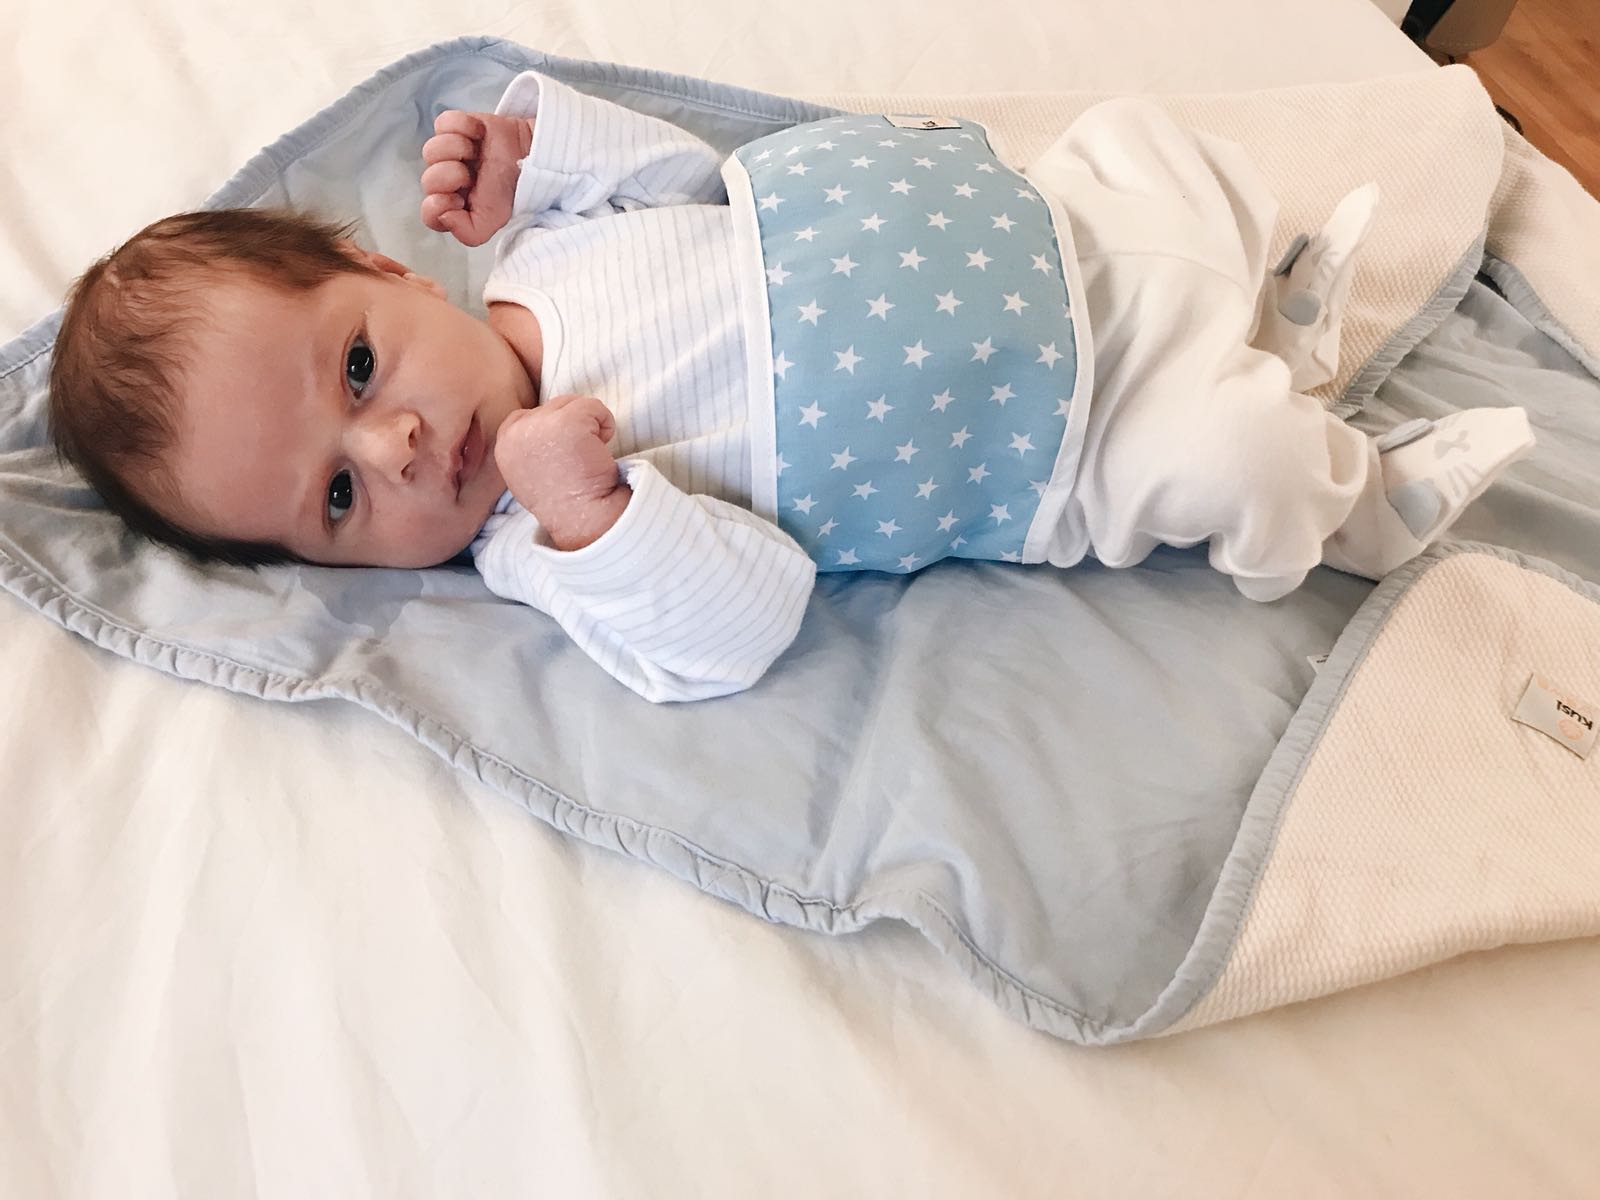 How much time does baby colic last?